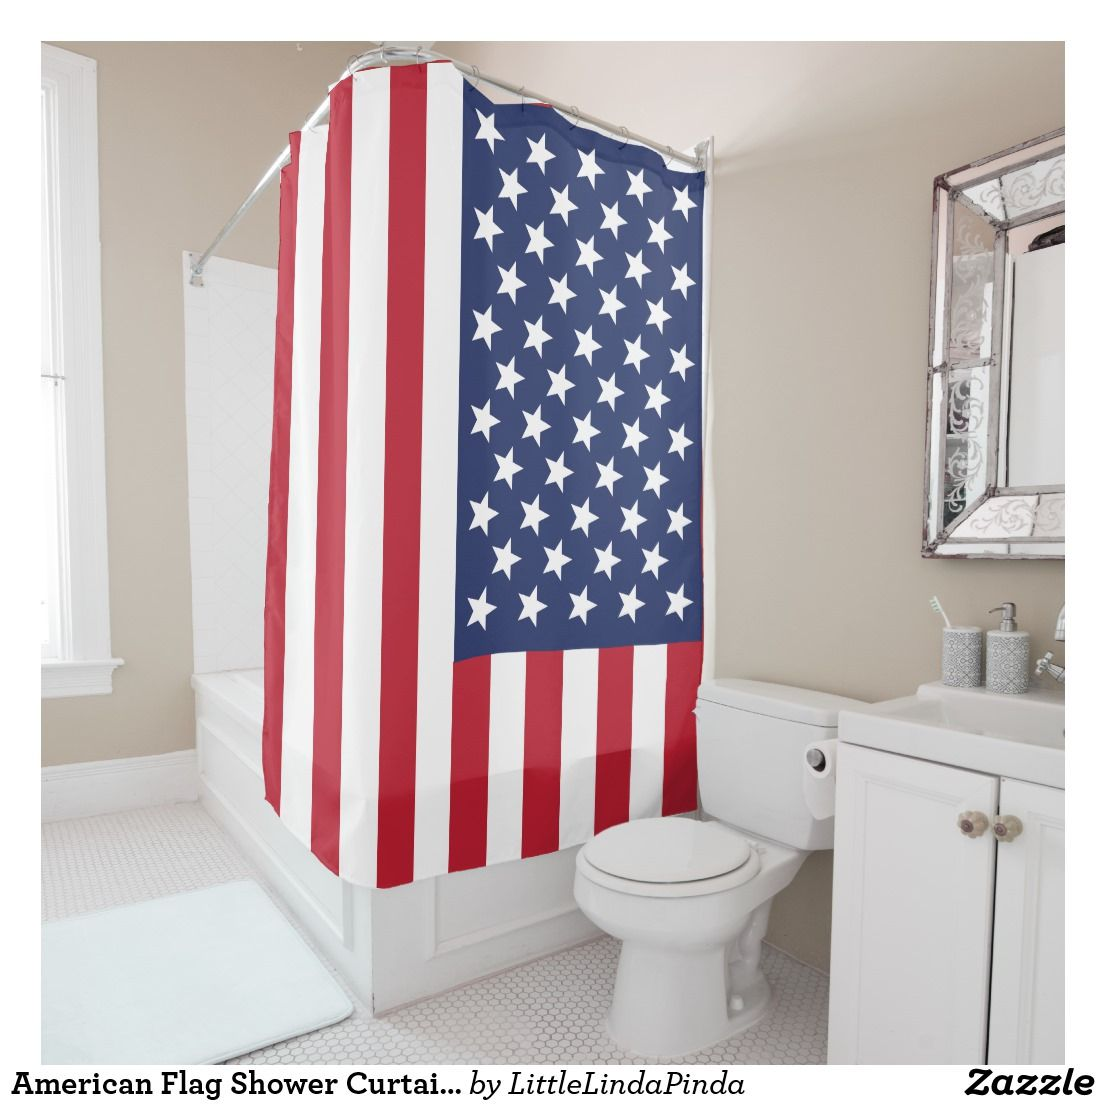 American Flag Patriotic Shower Curtain Or Your Image And Text CLICK